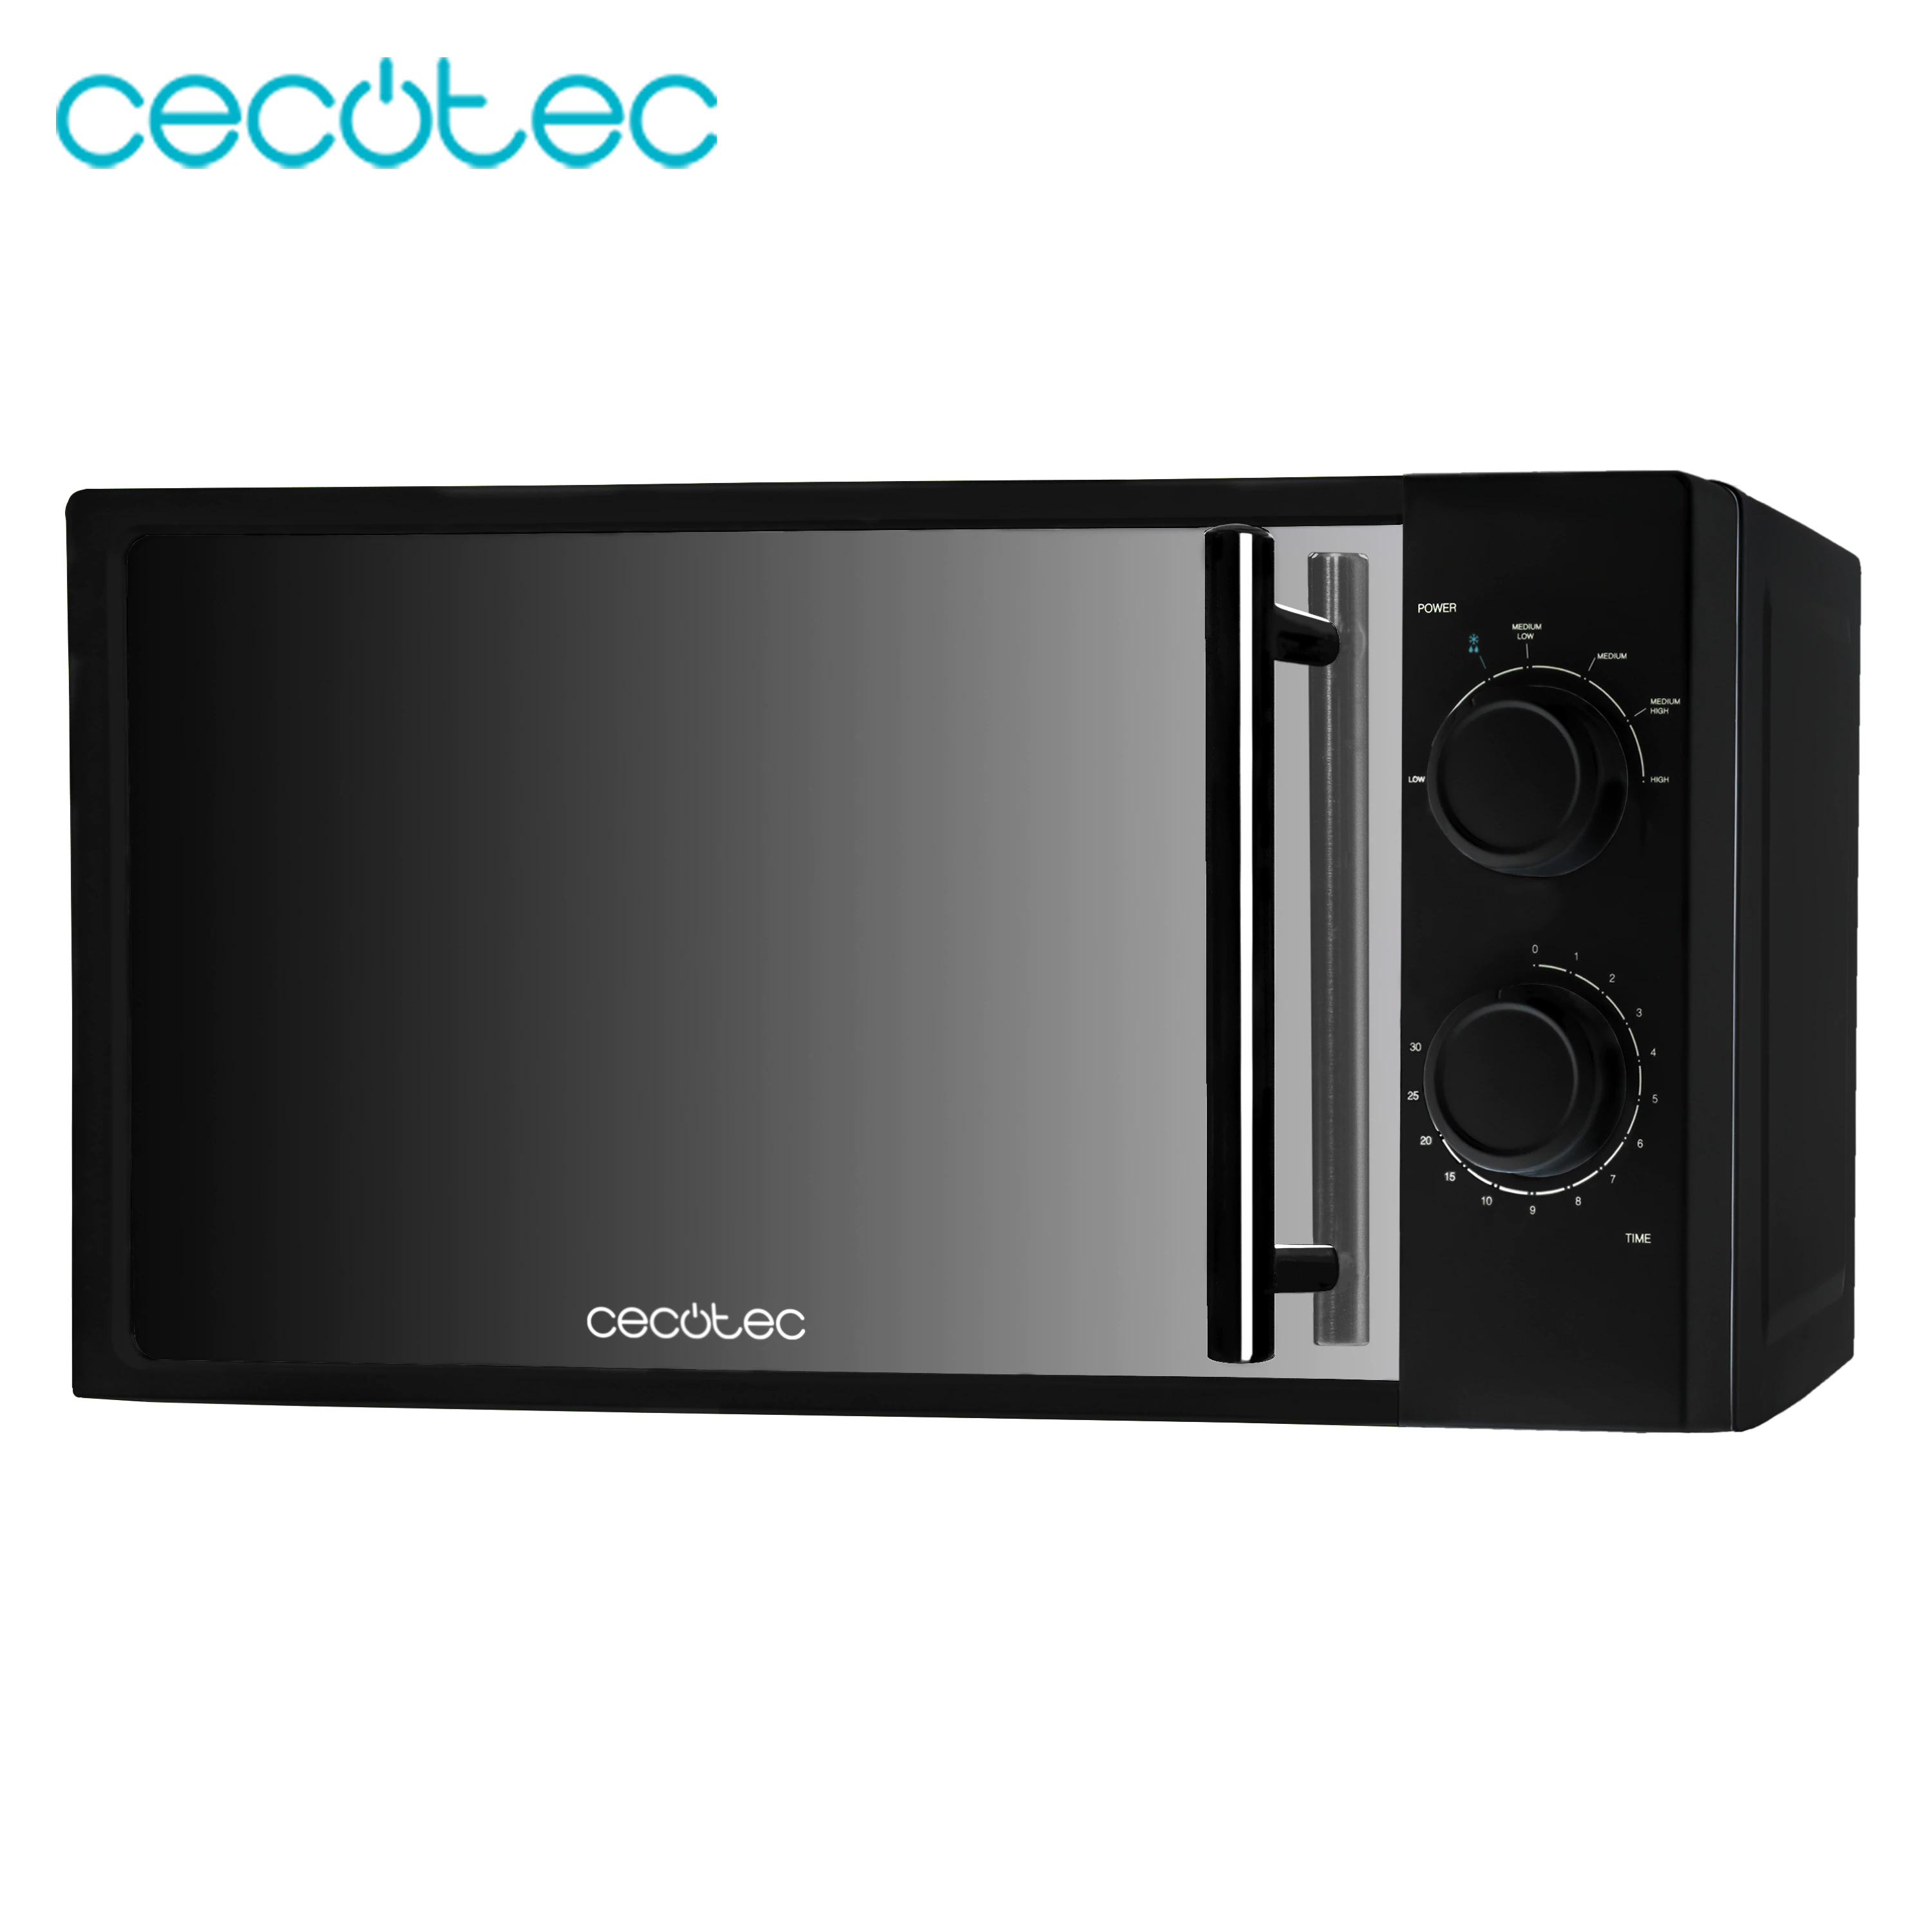 Cecotec Microwave All Black Along With The Dark Interior And The Front Of Mirror With 700w Of Power 20l Of Capacity